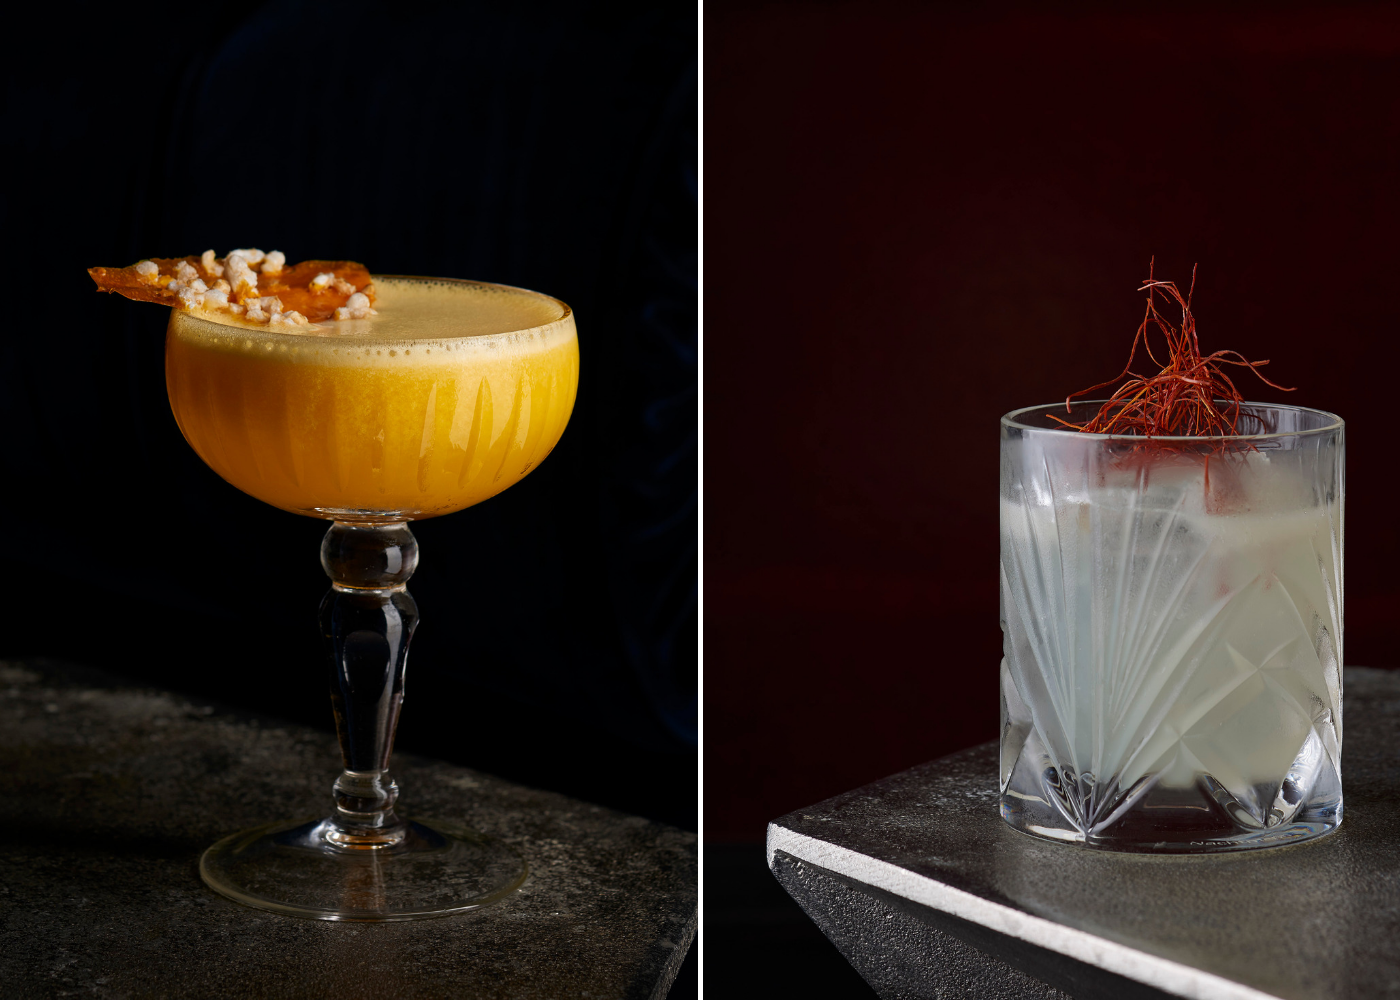 Free flow cocktails | Manhattan Bar Sunday brunch | 5 new speciality cocktails inspired from Asia